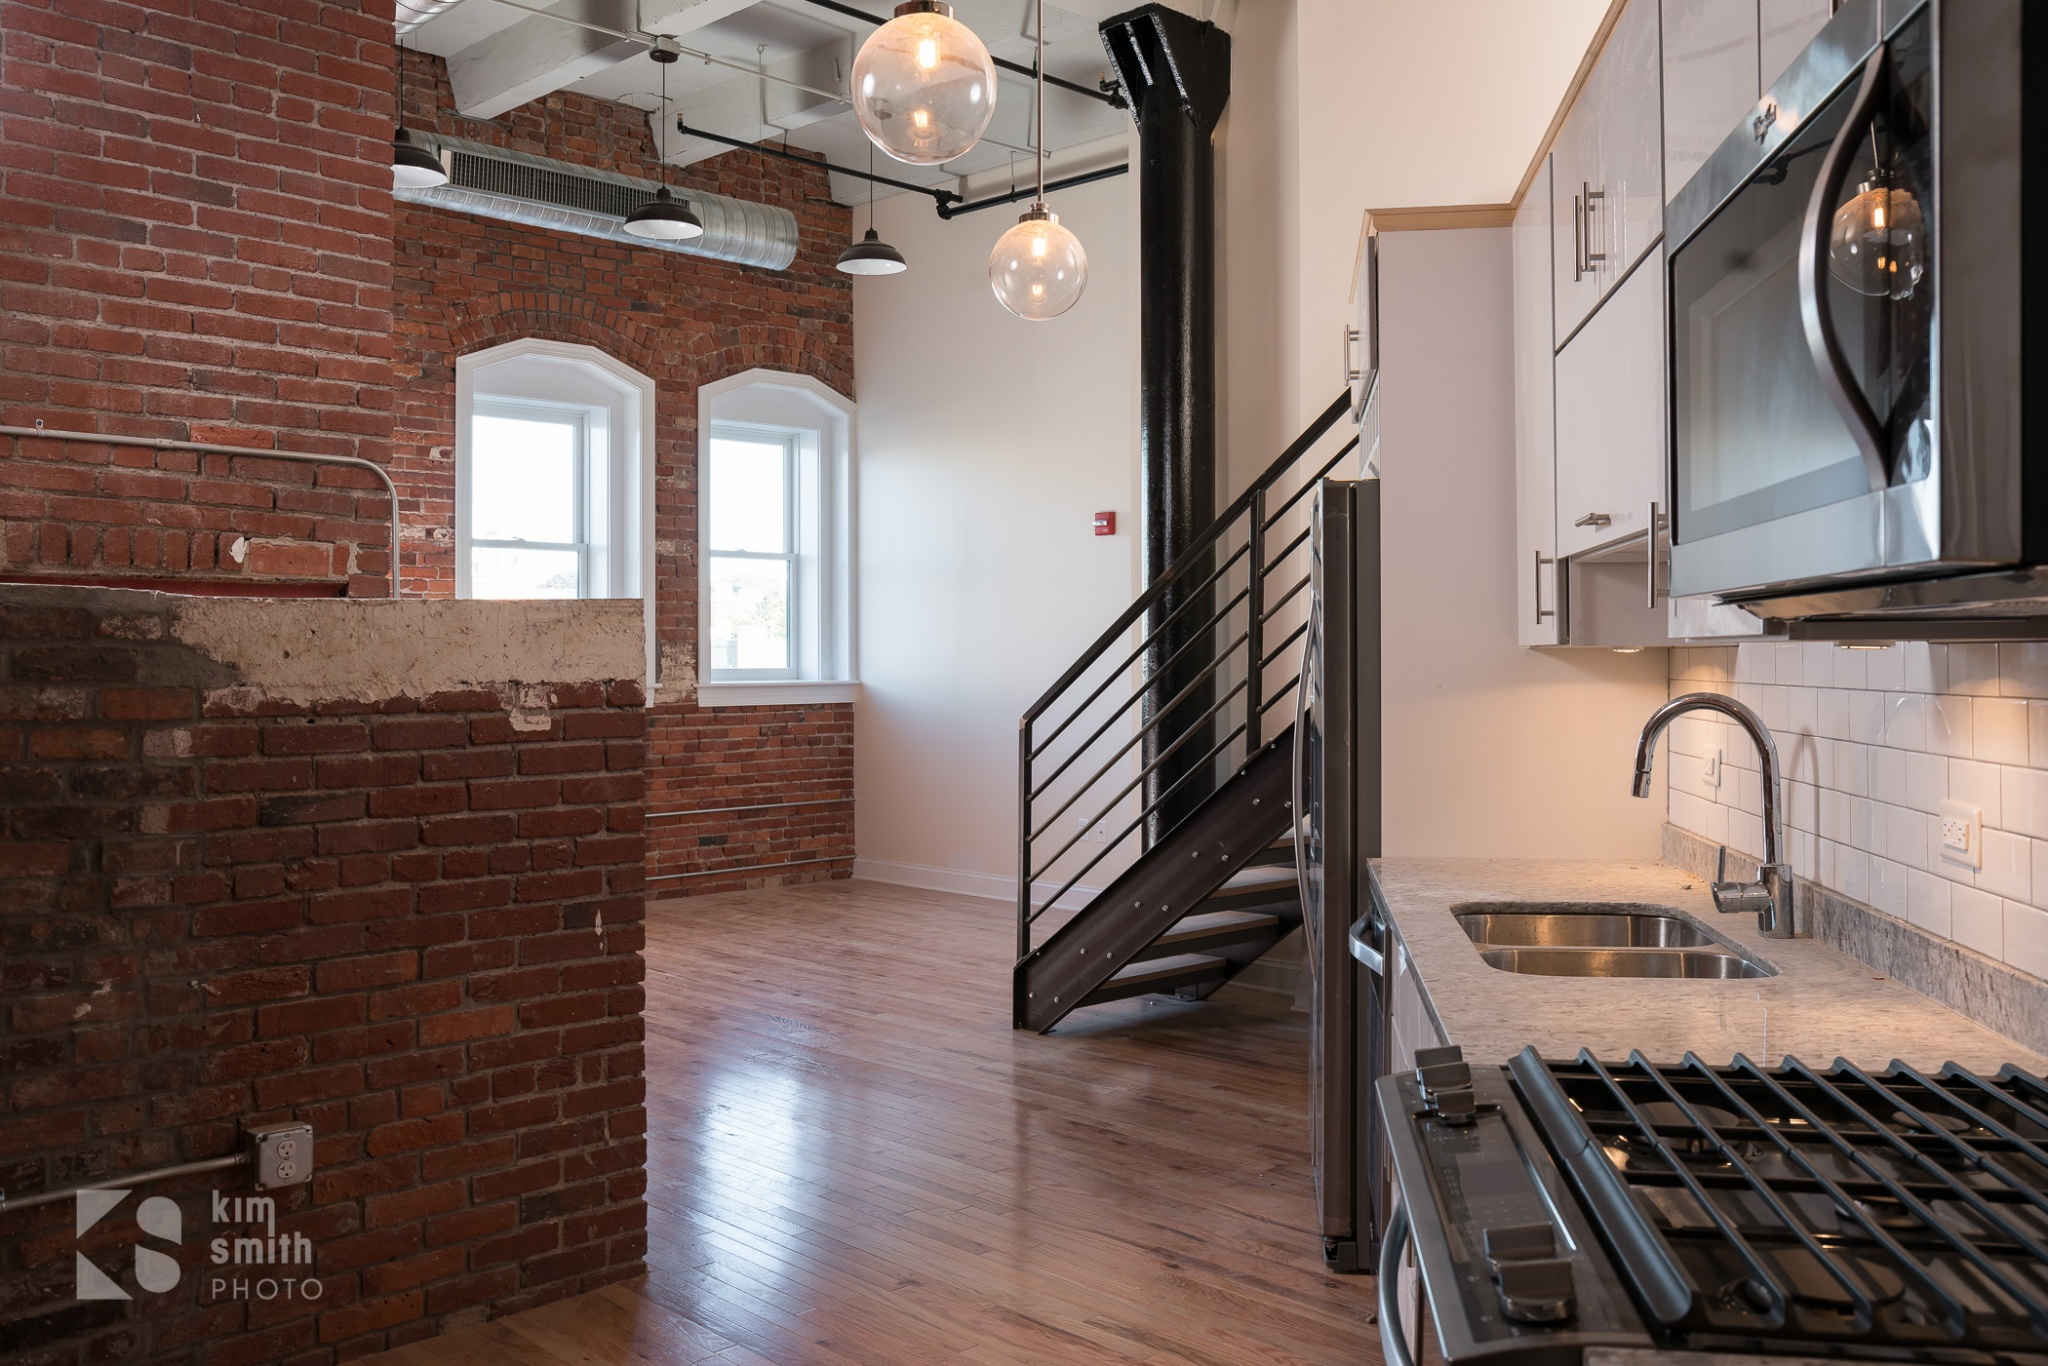 Phoenix Brewery Apartments awarded Excellence in Historic Preservation by Preservation League of New York State